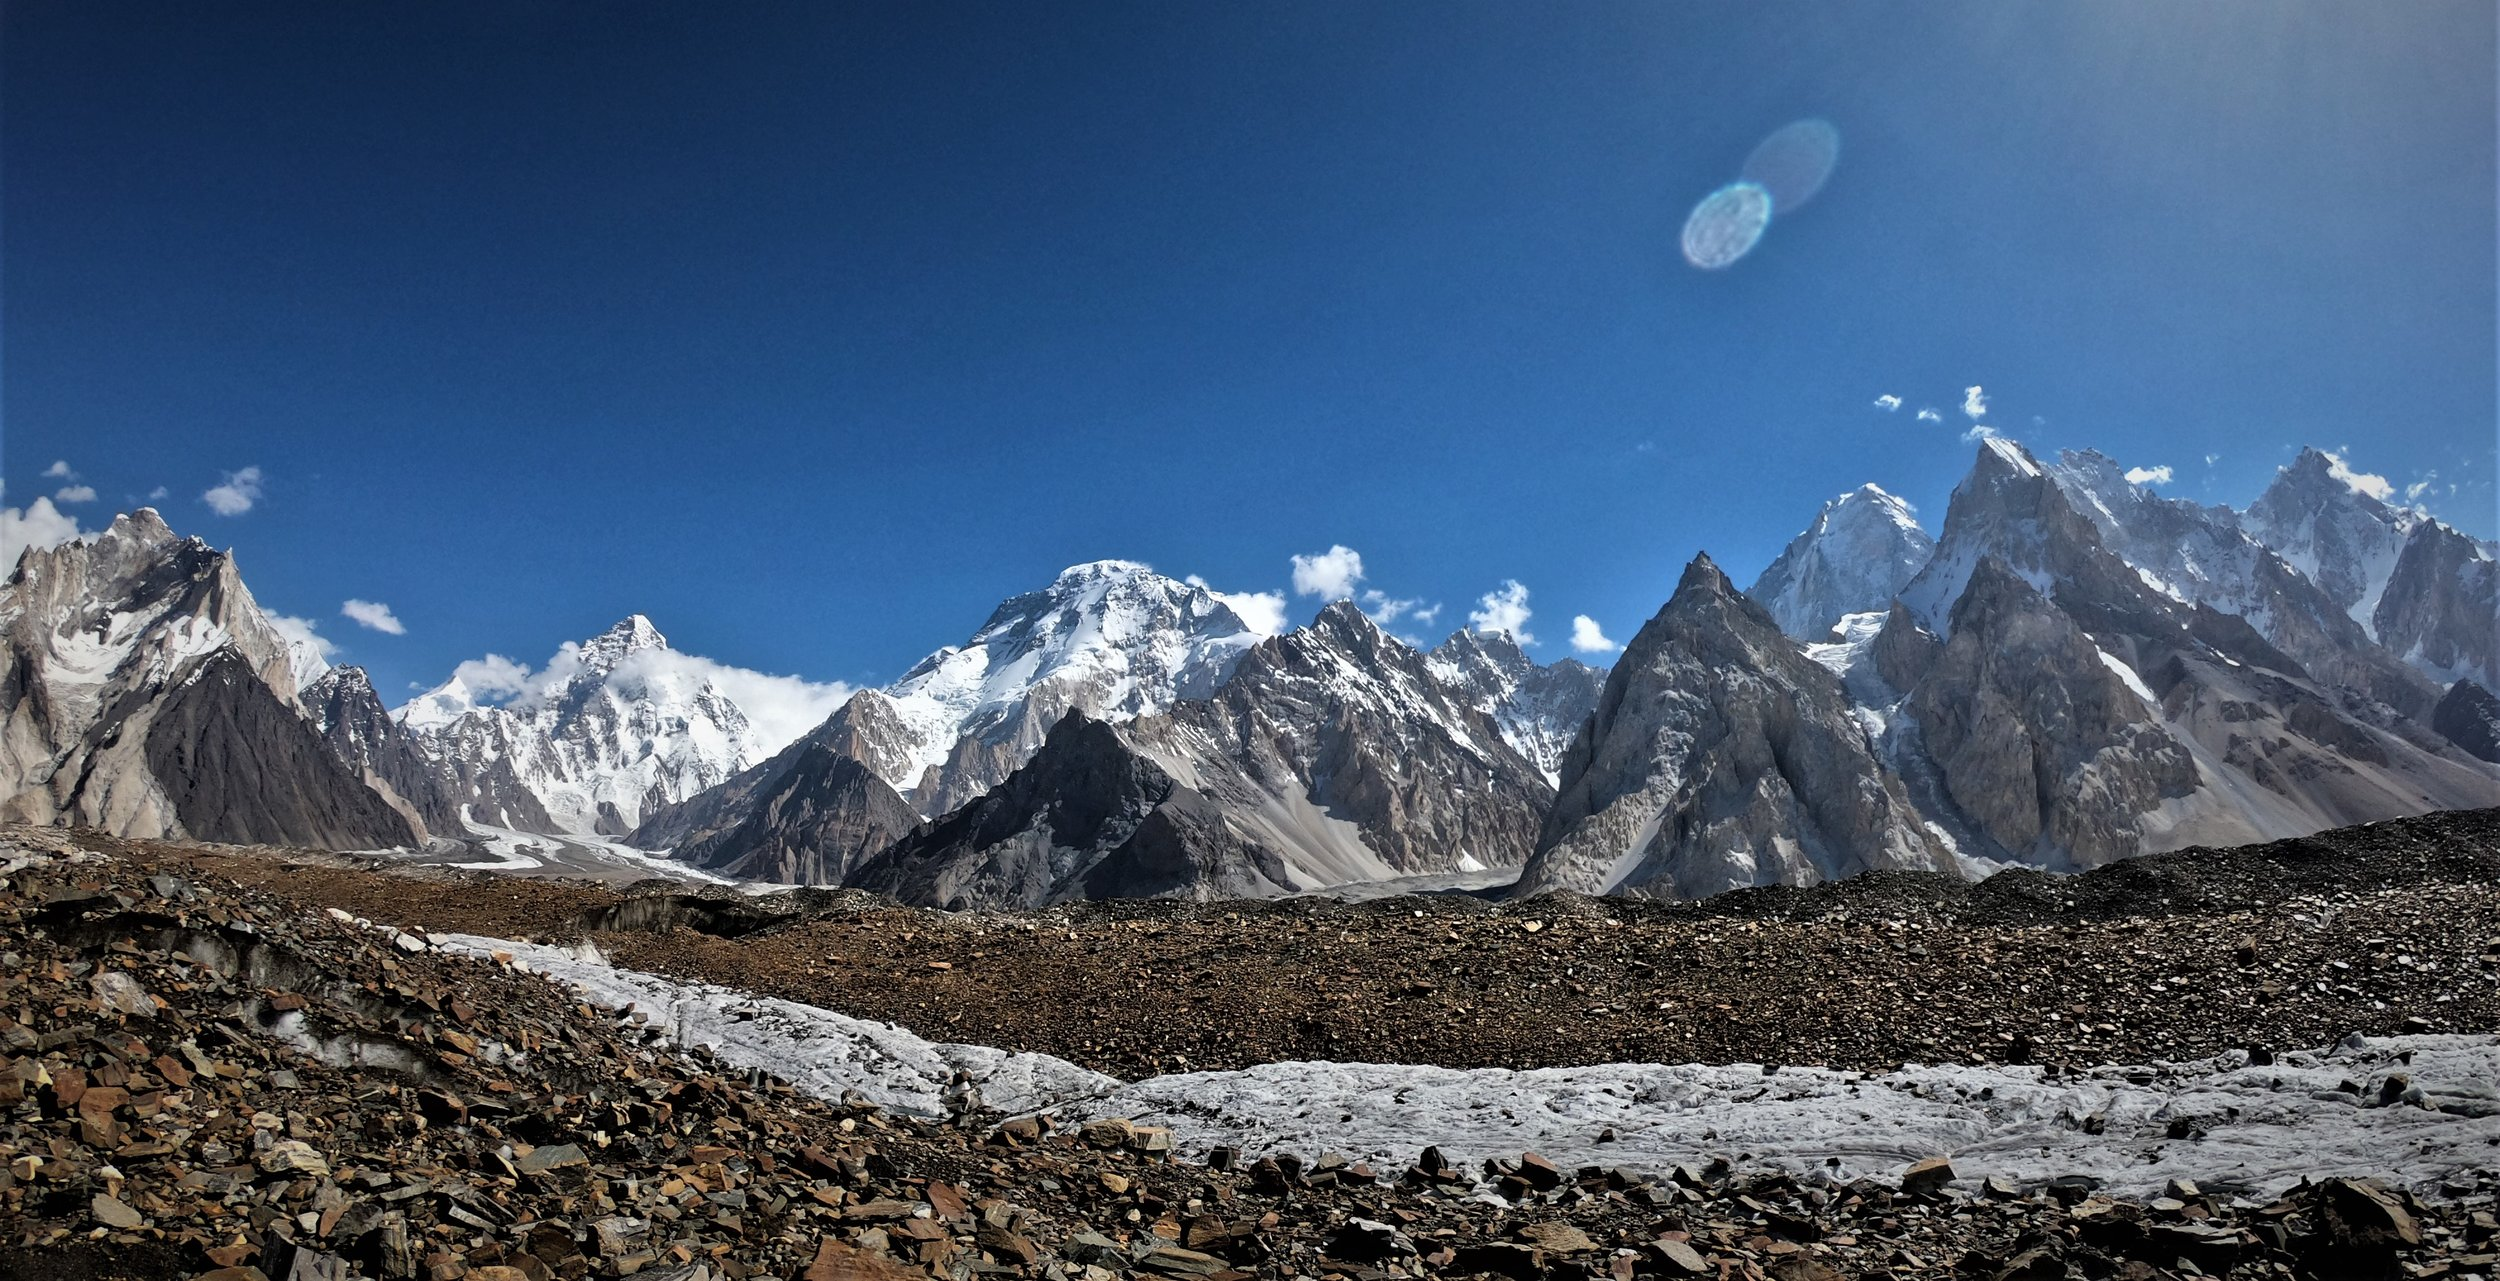 On the way to Gondogoro pass , looking back to Concordia with K2, Broad Peak , Gasherbrum's 4 - G2 and G1 all in the picture, the greatest concentration of major peaks in the world.